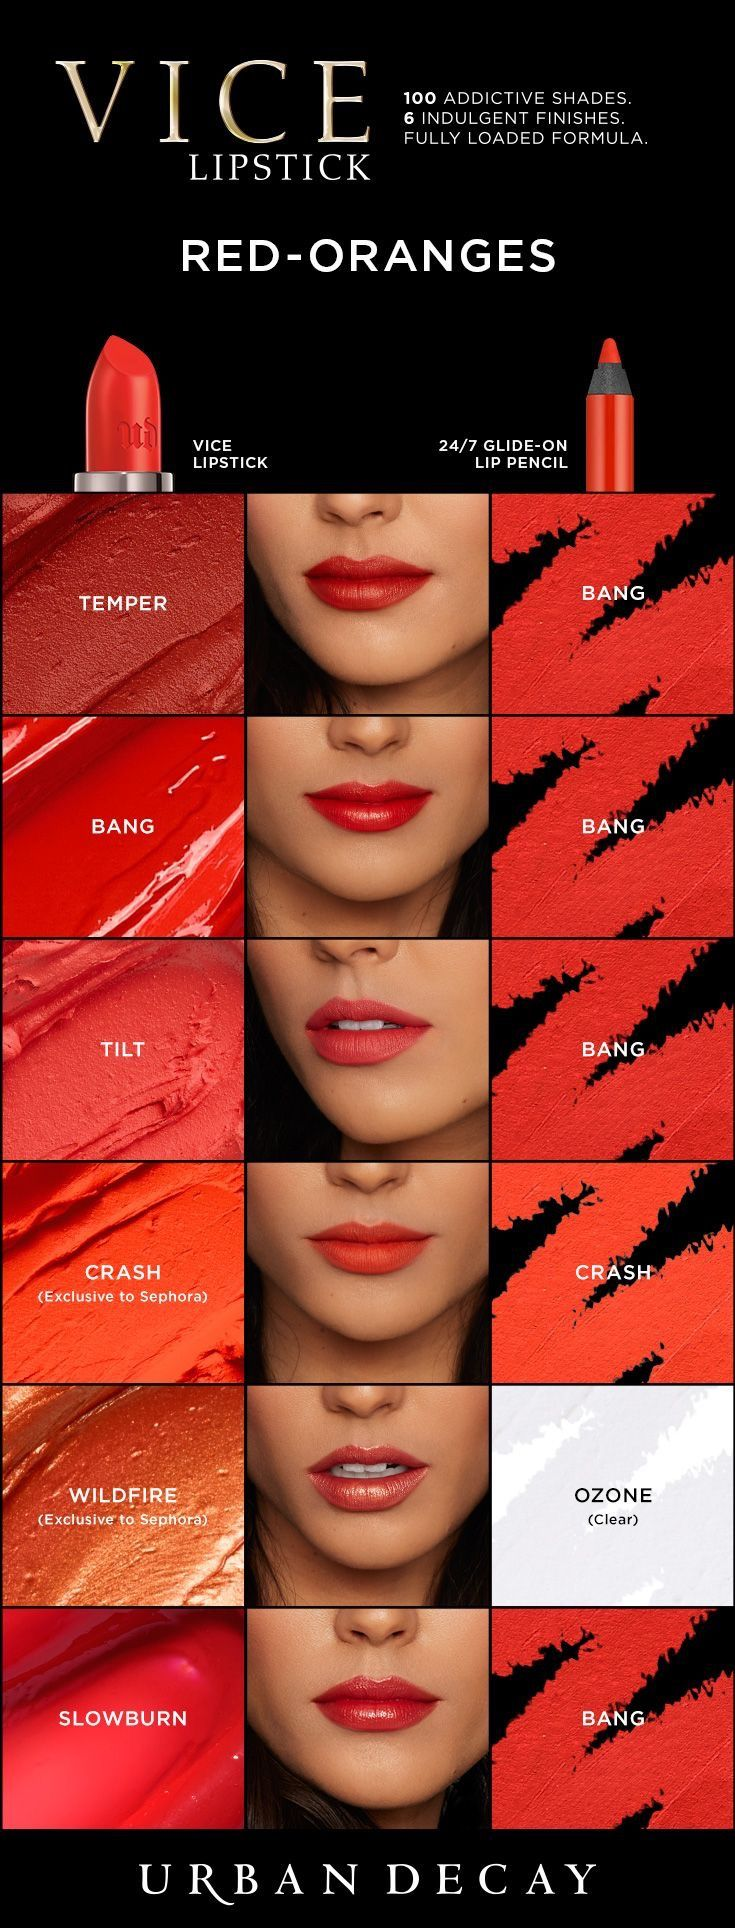 URBAN DECAY Vice Lipsticks - Oranges